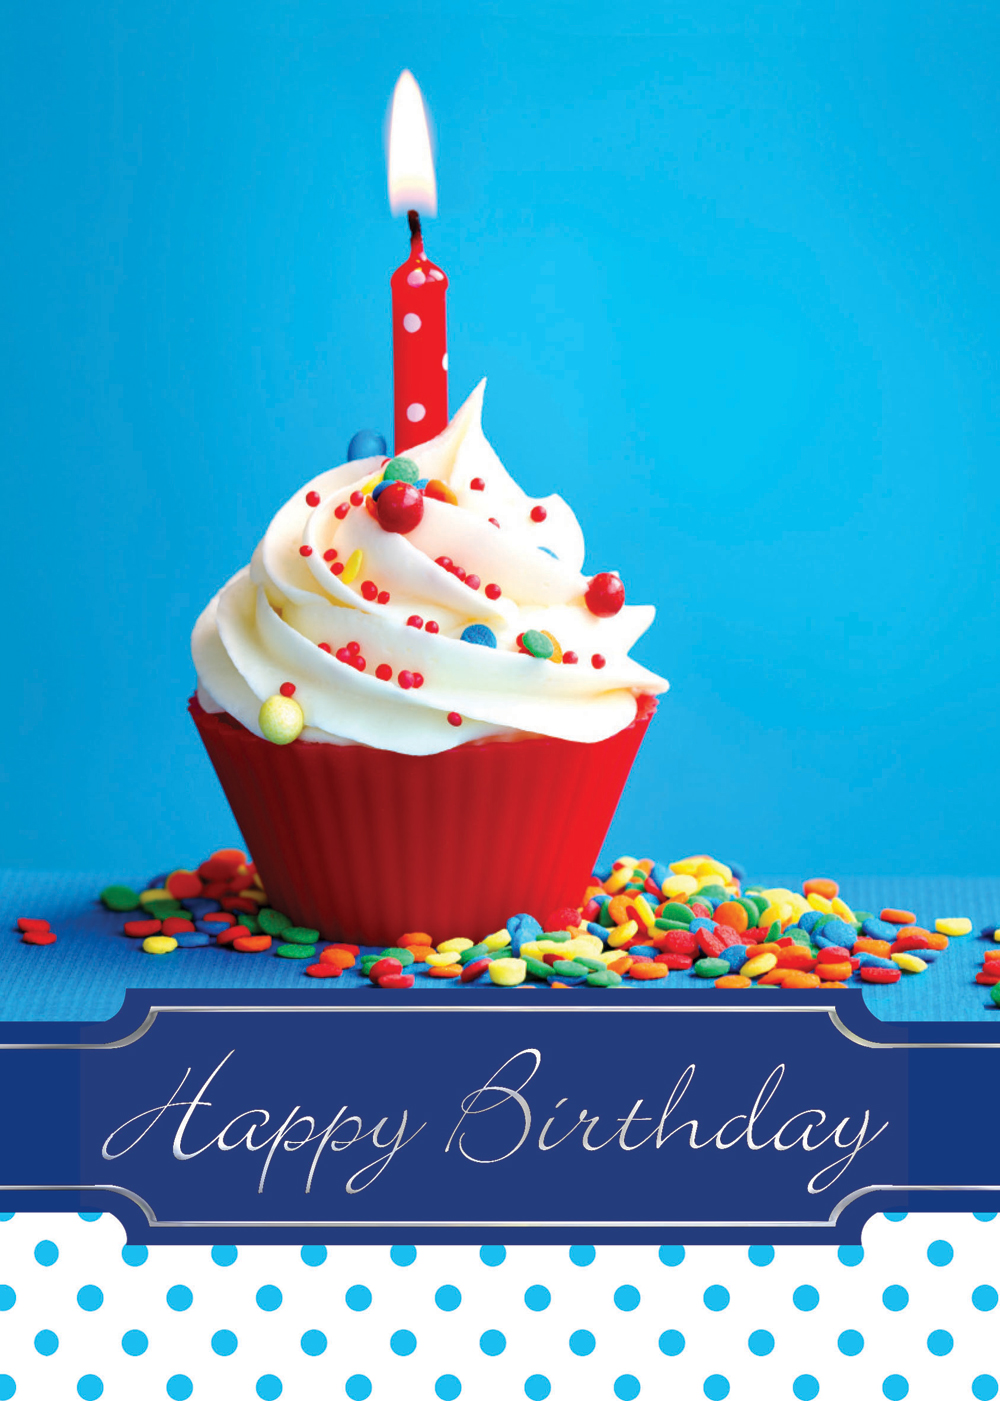 cupcake birthday card ; a4903bd_0_zoom